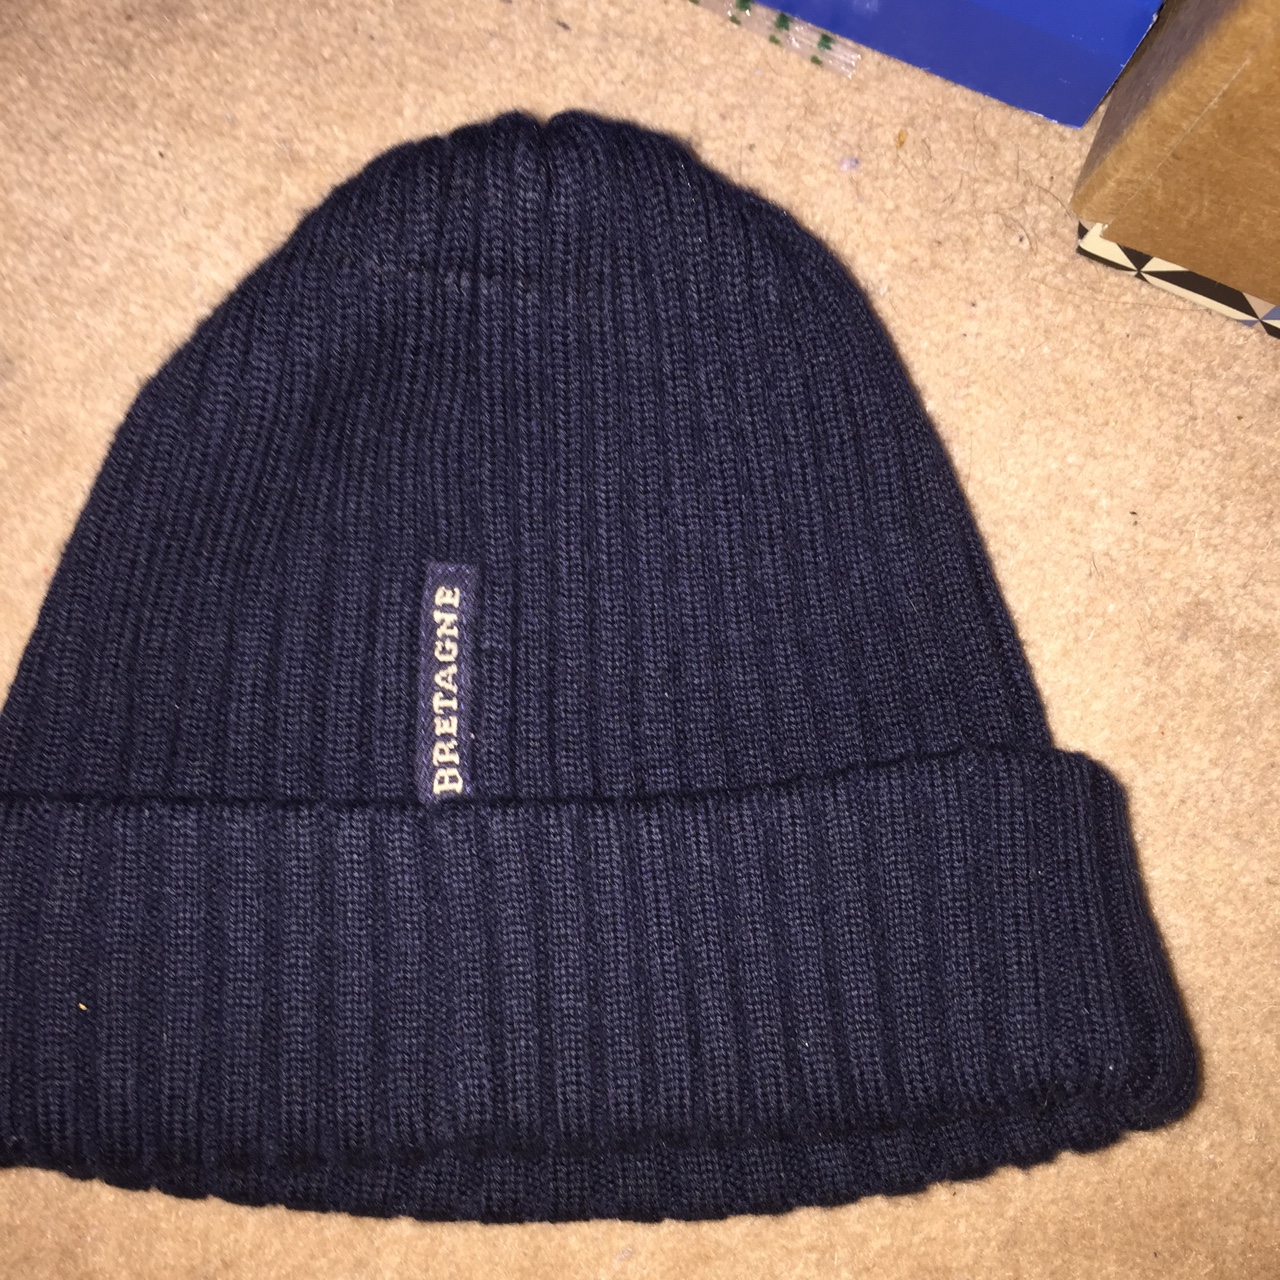 6d5be1172c2 Paul and shark navy blue beanie. 8 10 condition. No rips or - Depop